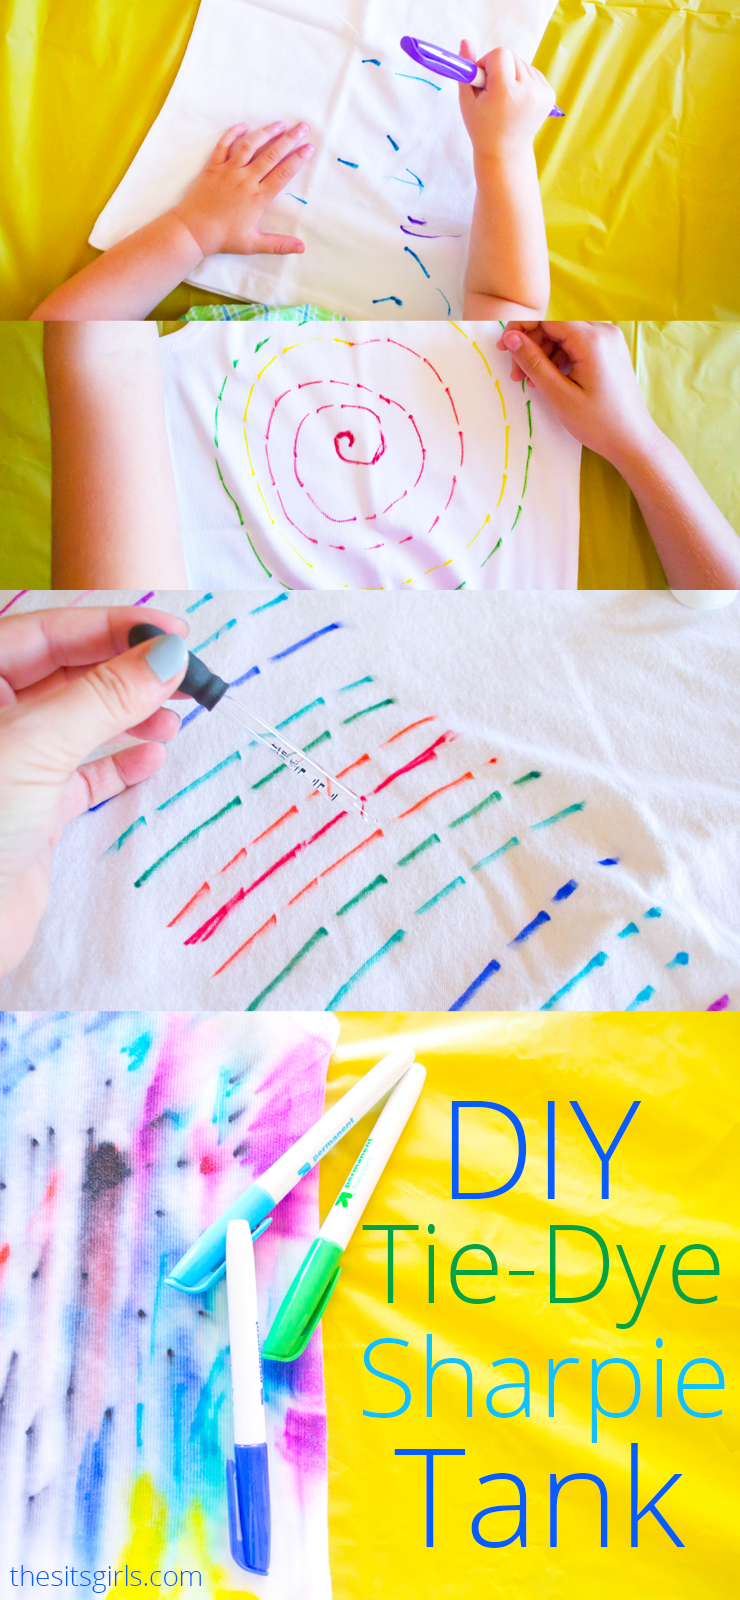 DIY Tie-Dye Tank Tops | Use Sharpies and rubbing alcohol to make this easy project! This is a fun summer activity to do with your kids.